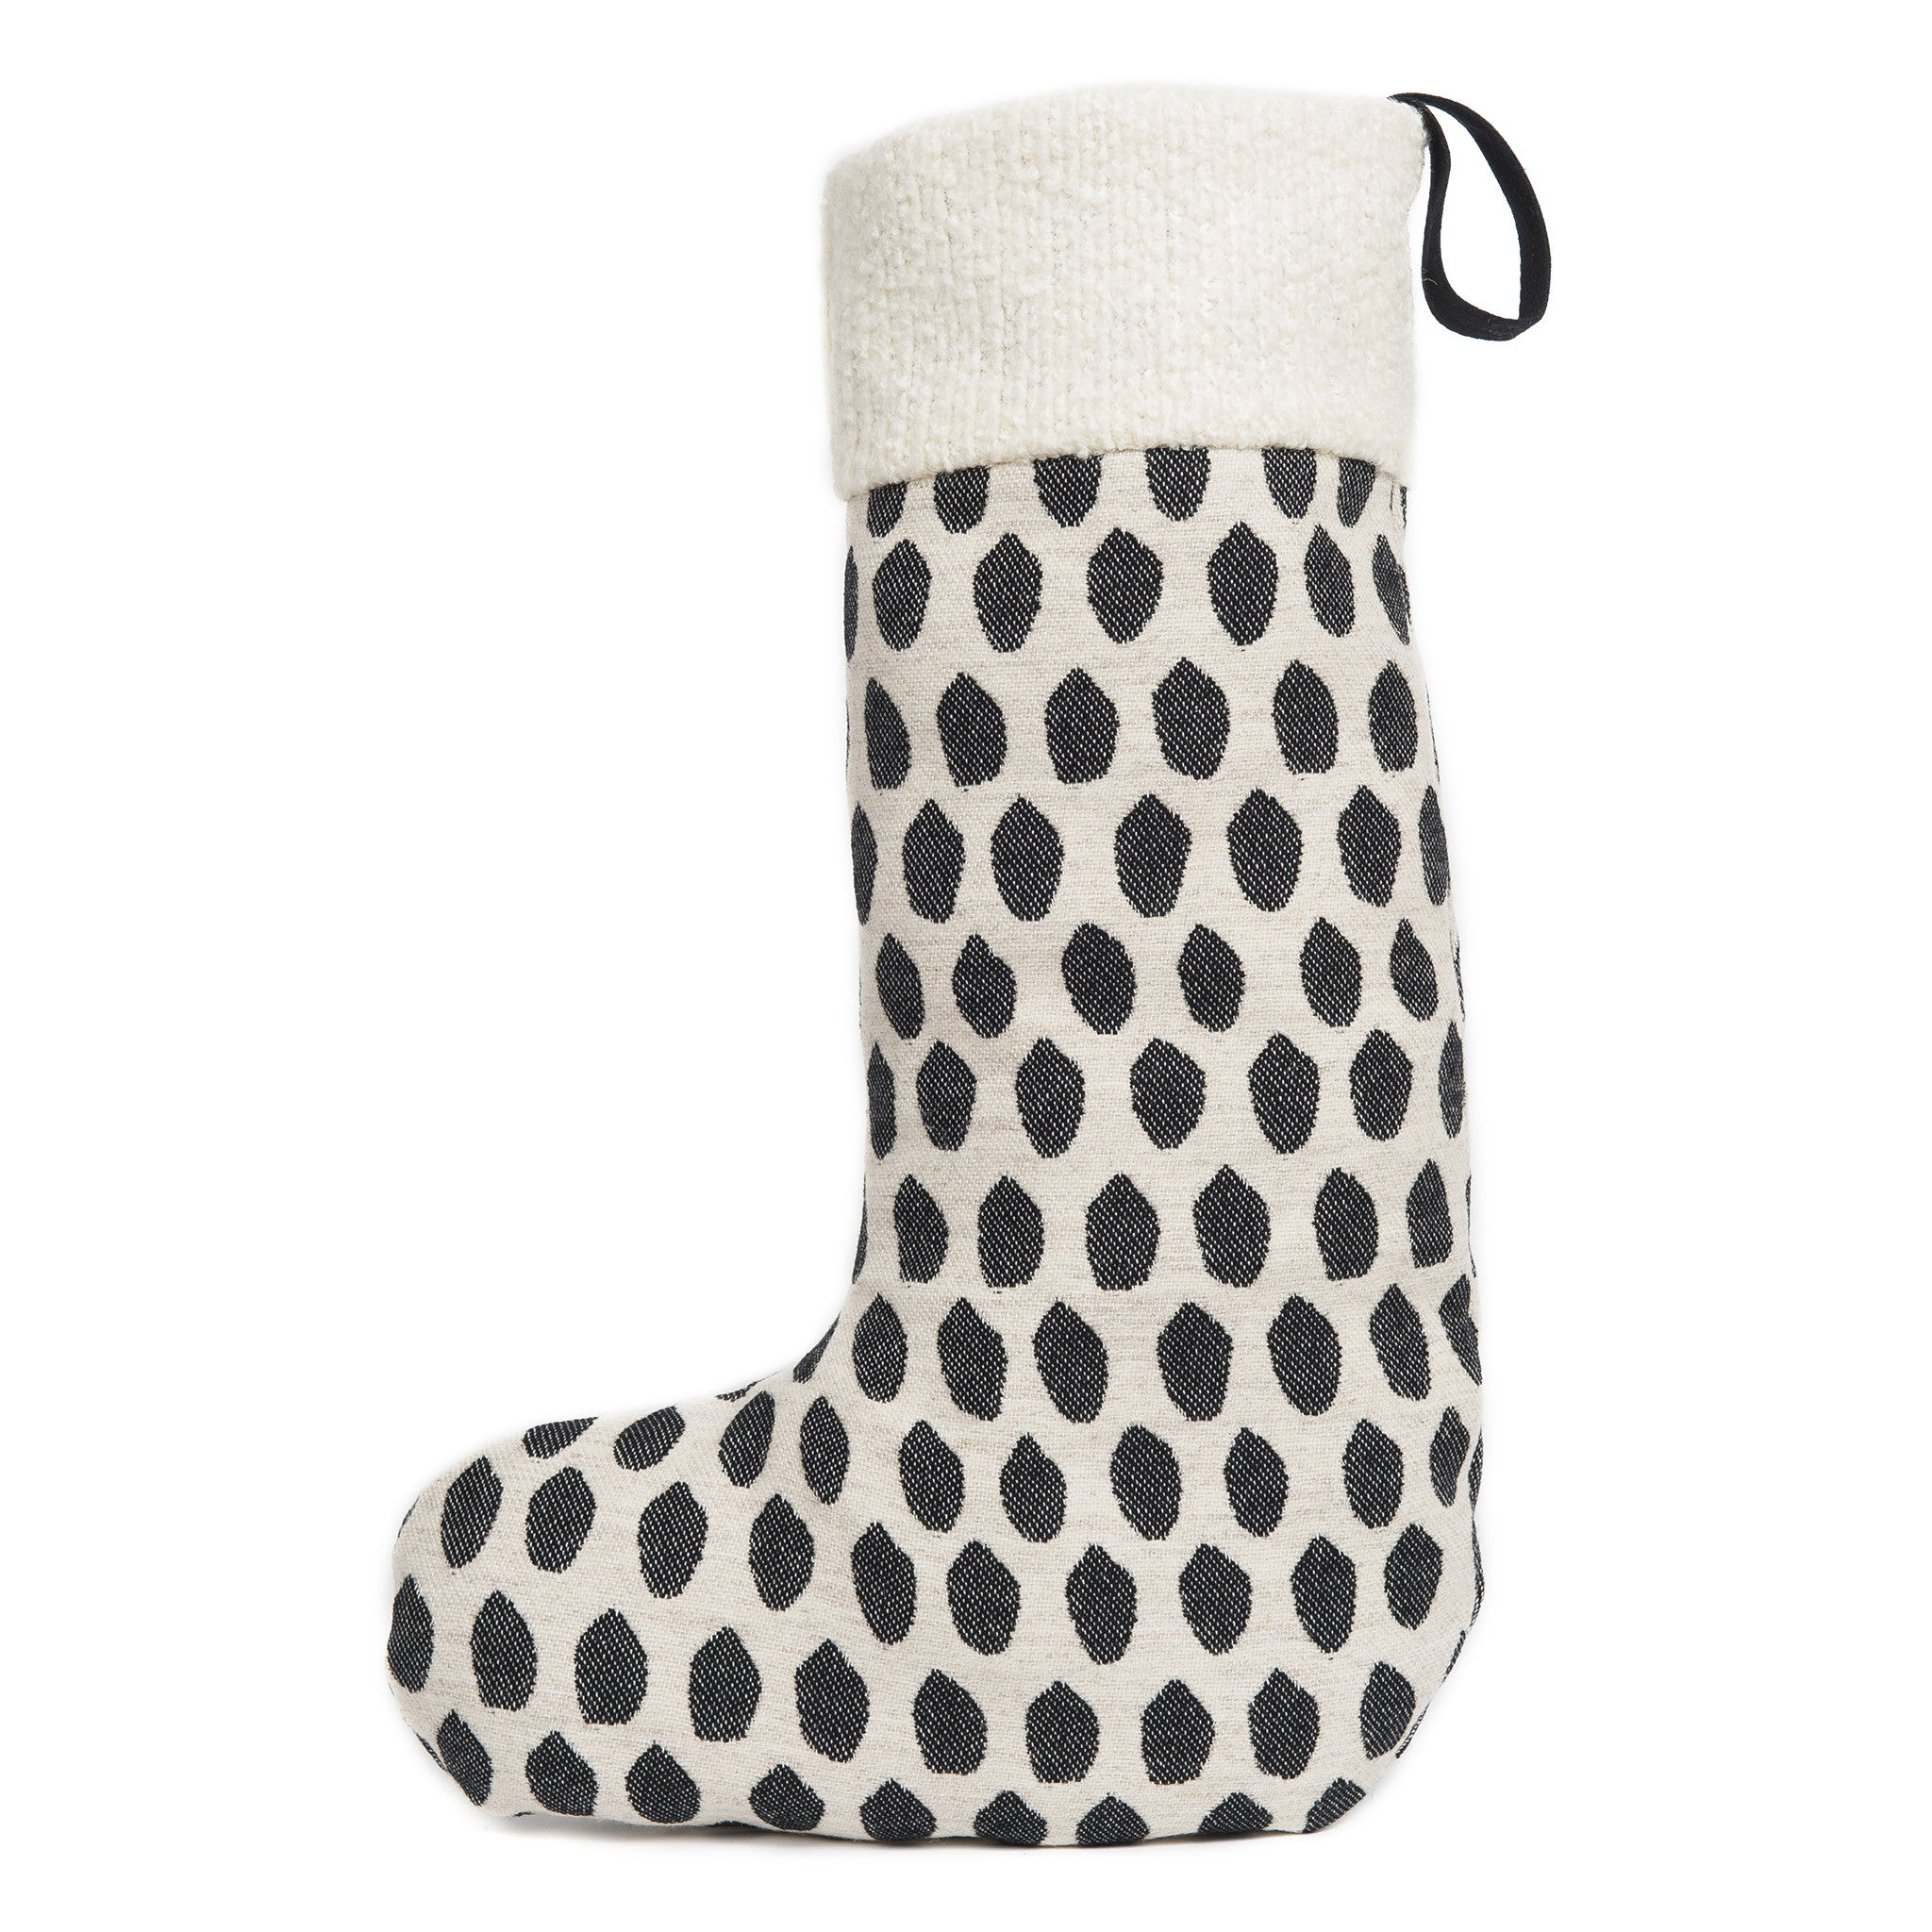 Merino Lambswool Christmas Stocking - Elca Black on Linen Stocking - Tori Murphy Ltd